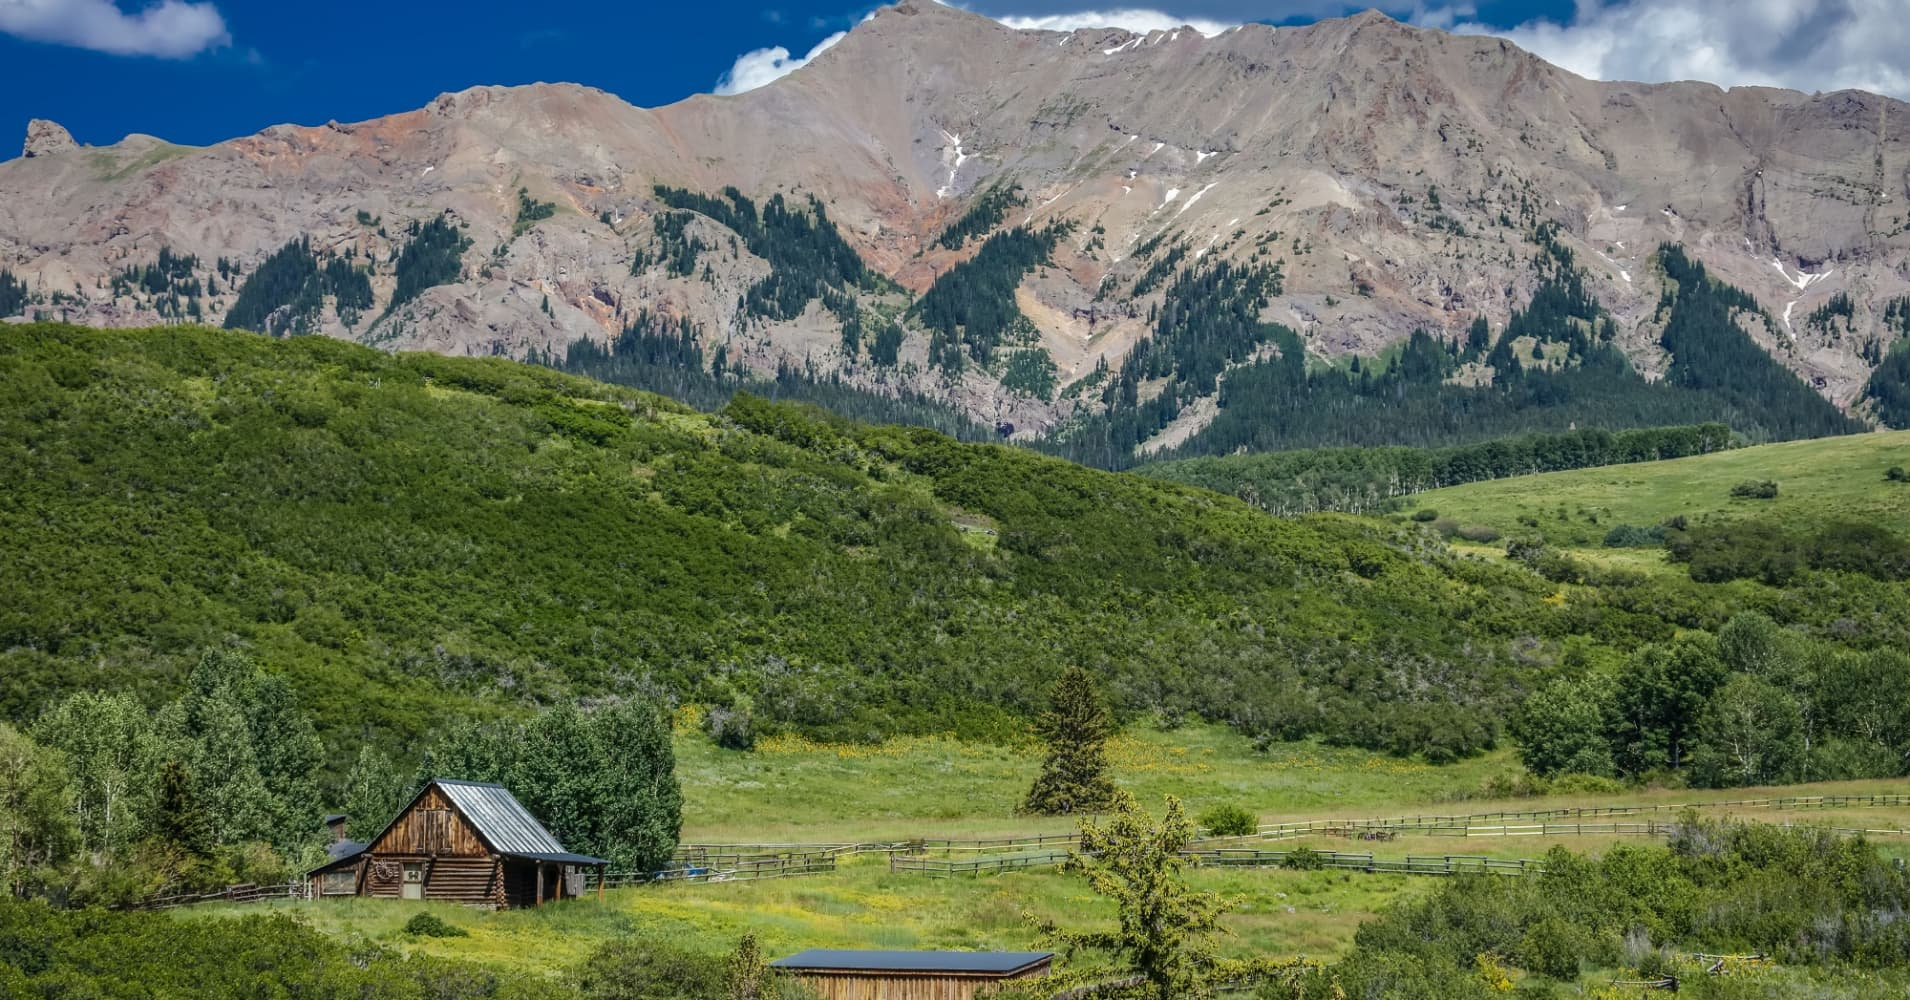 Log Cabin at the foot of the San Juan Mountains in Colorado.